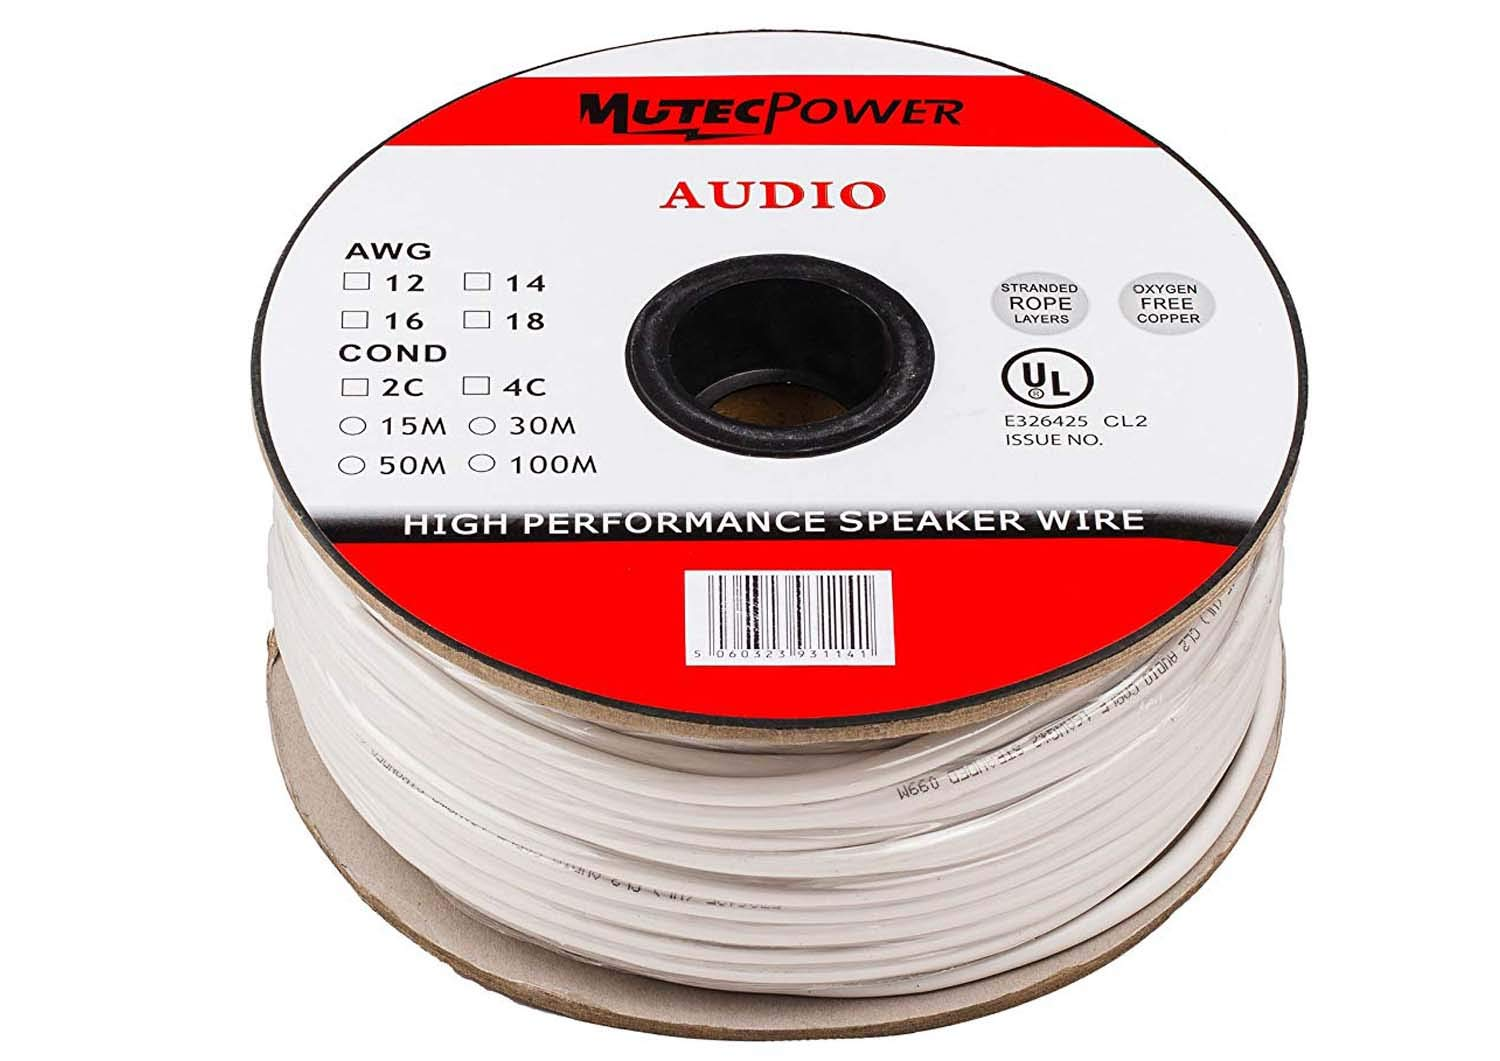 Mutec-Cable -Speaker Wire 2 x 1.5mm² 50M CL2 Rated UL: Amazon.co.uk ...